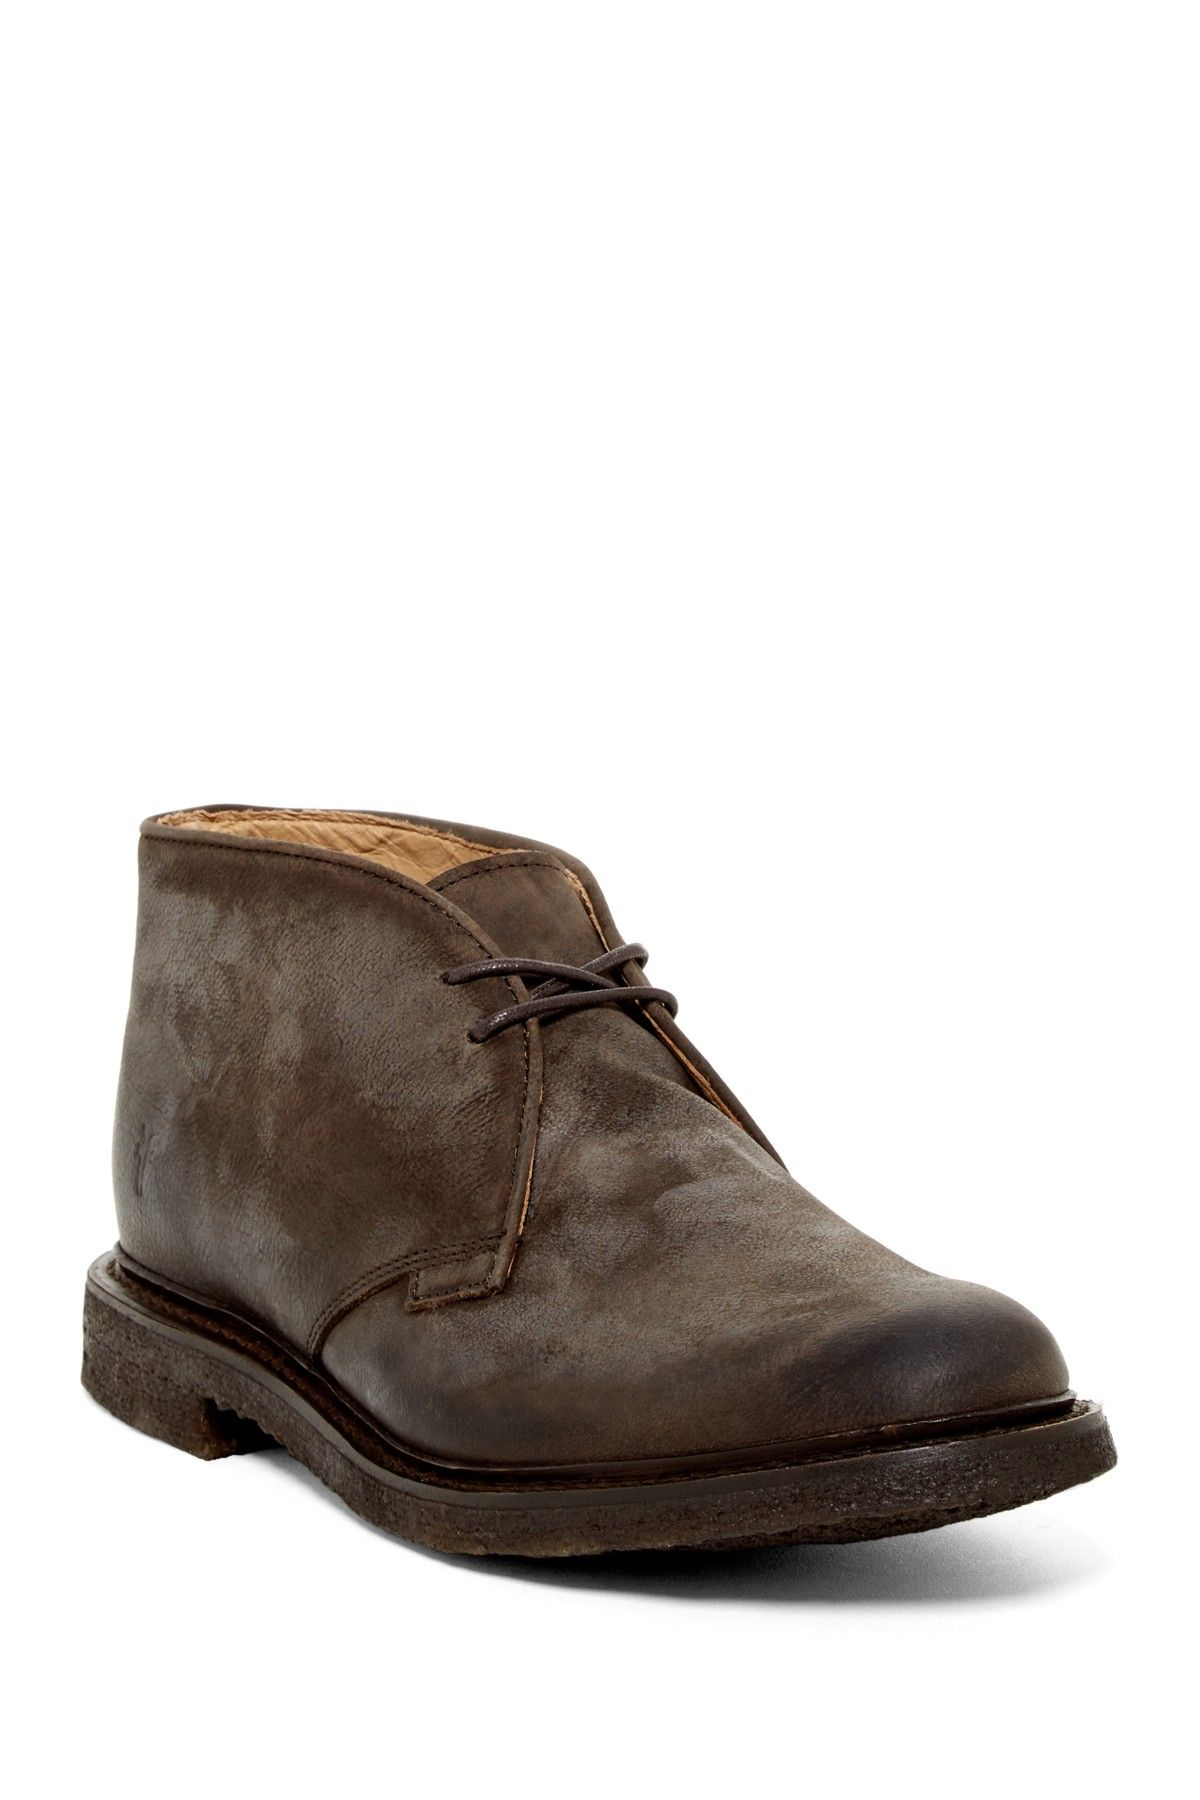 Frye James Crepe Chukka Boot Boots Shoes Sneakers